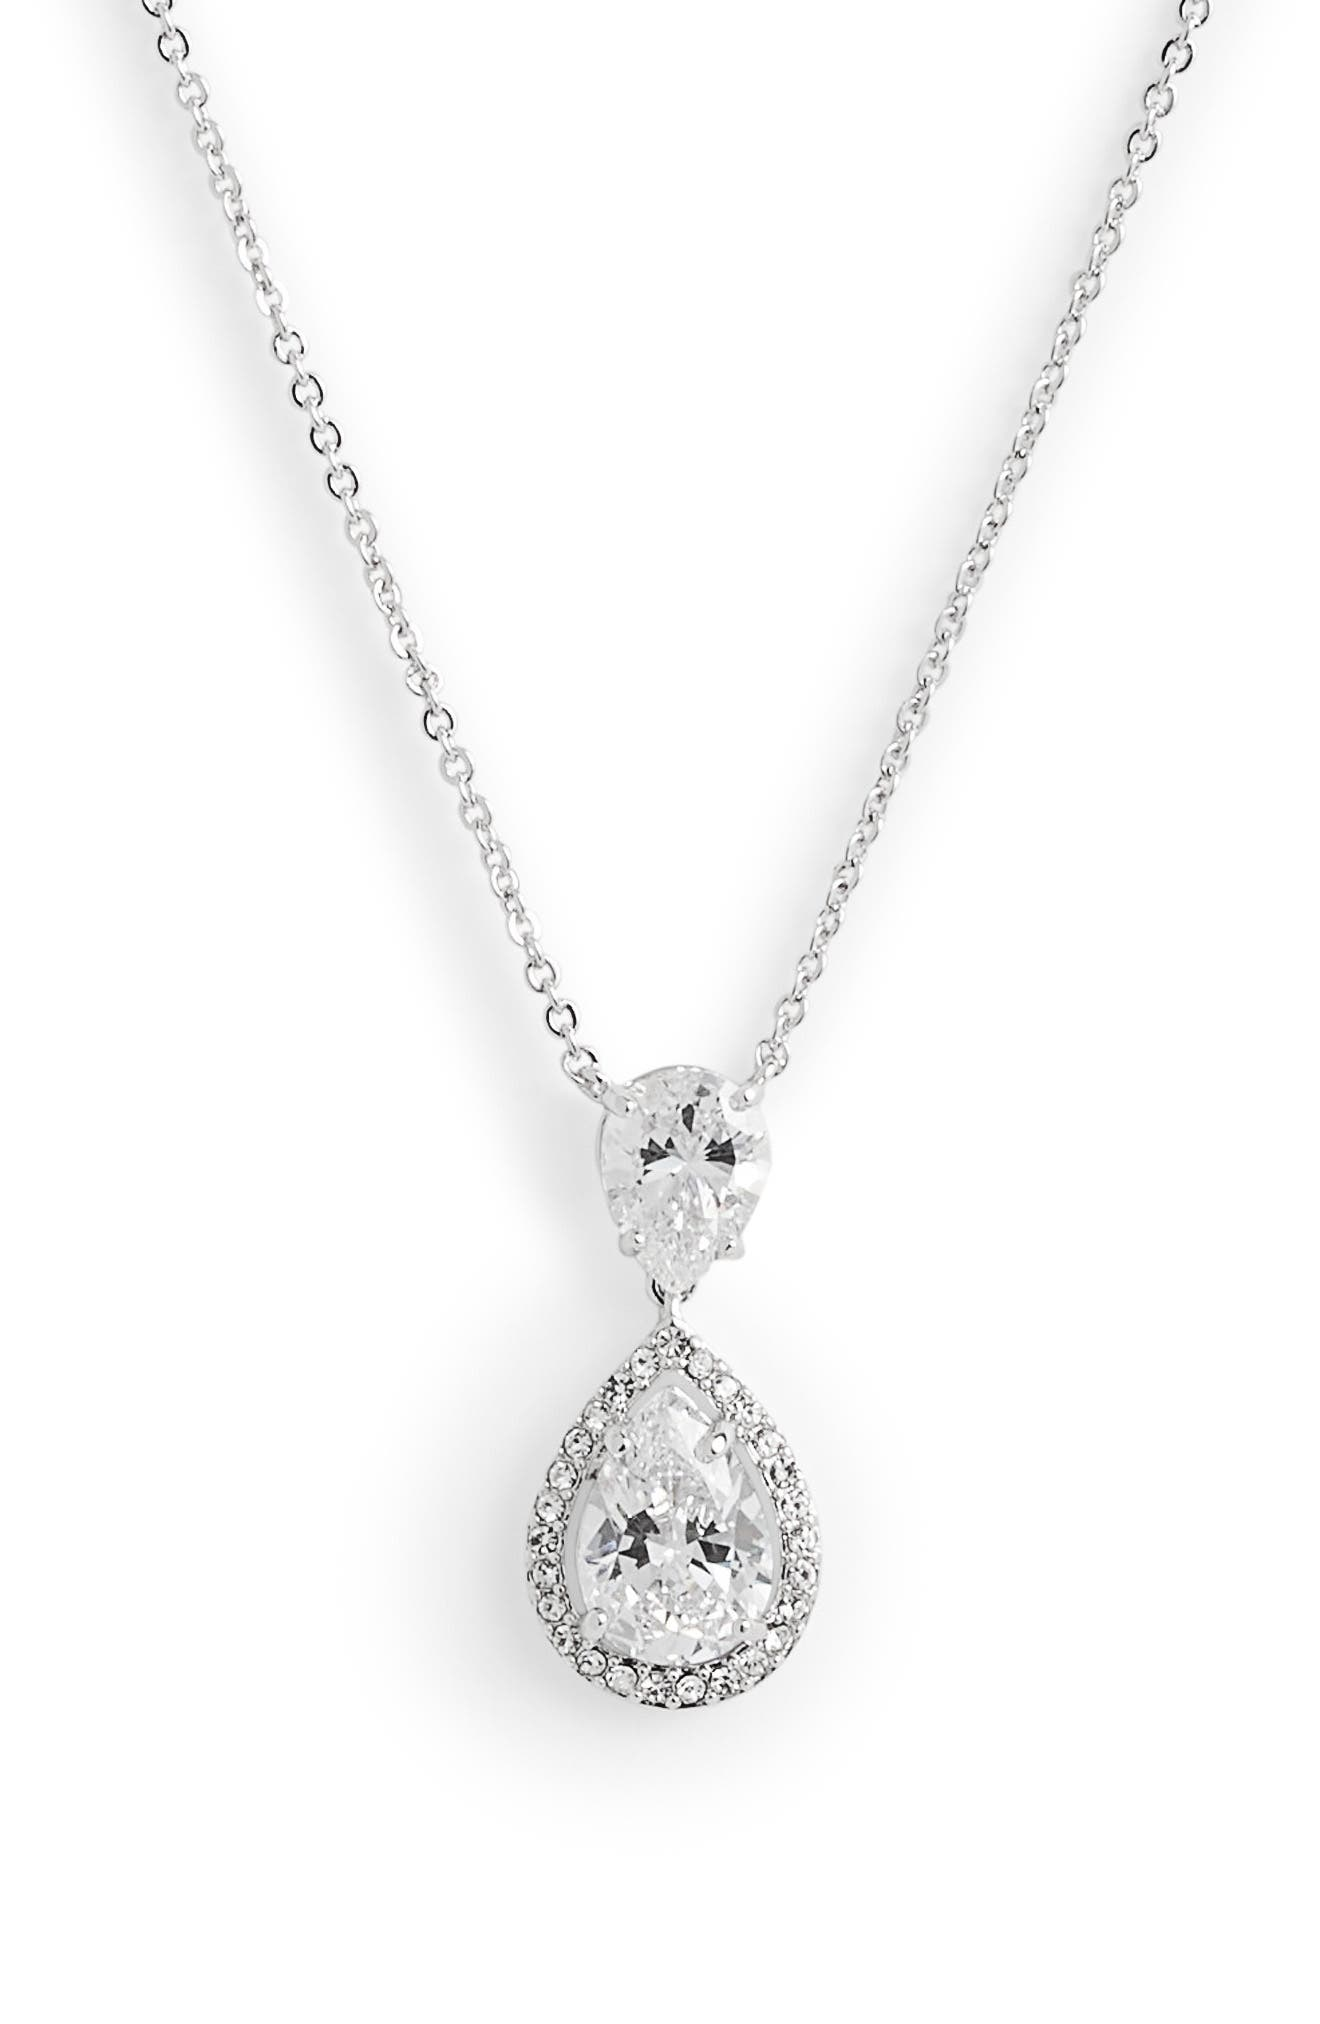 Crystal Teardrop Pendant Necklace,                             Main thumbnail 1, color,                             CLEAR- SILVER